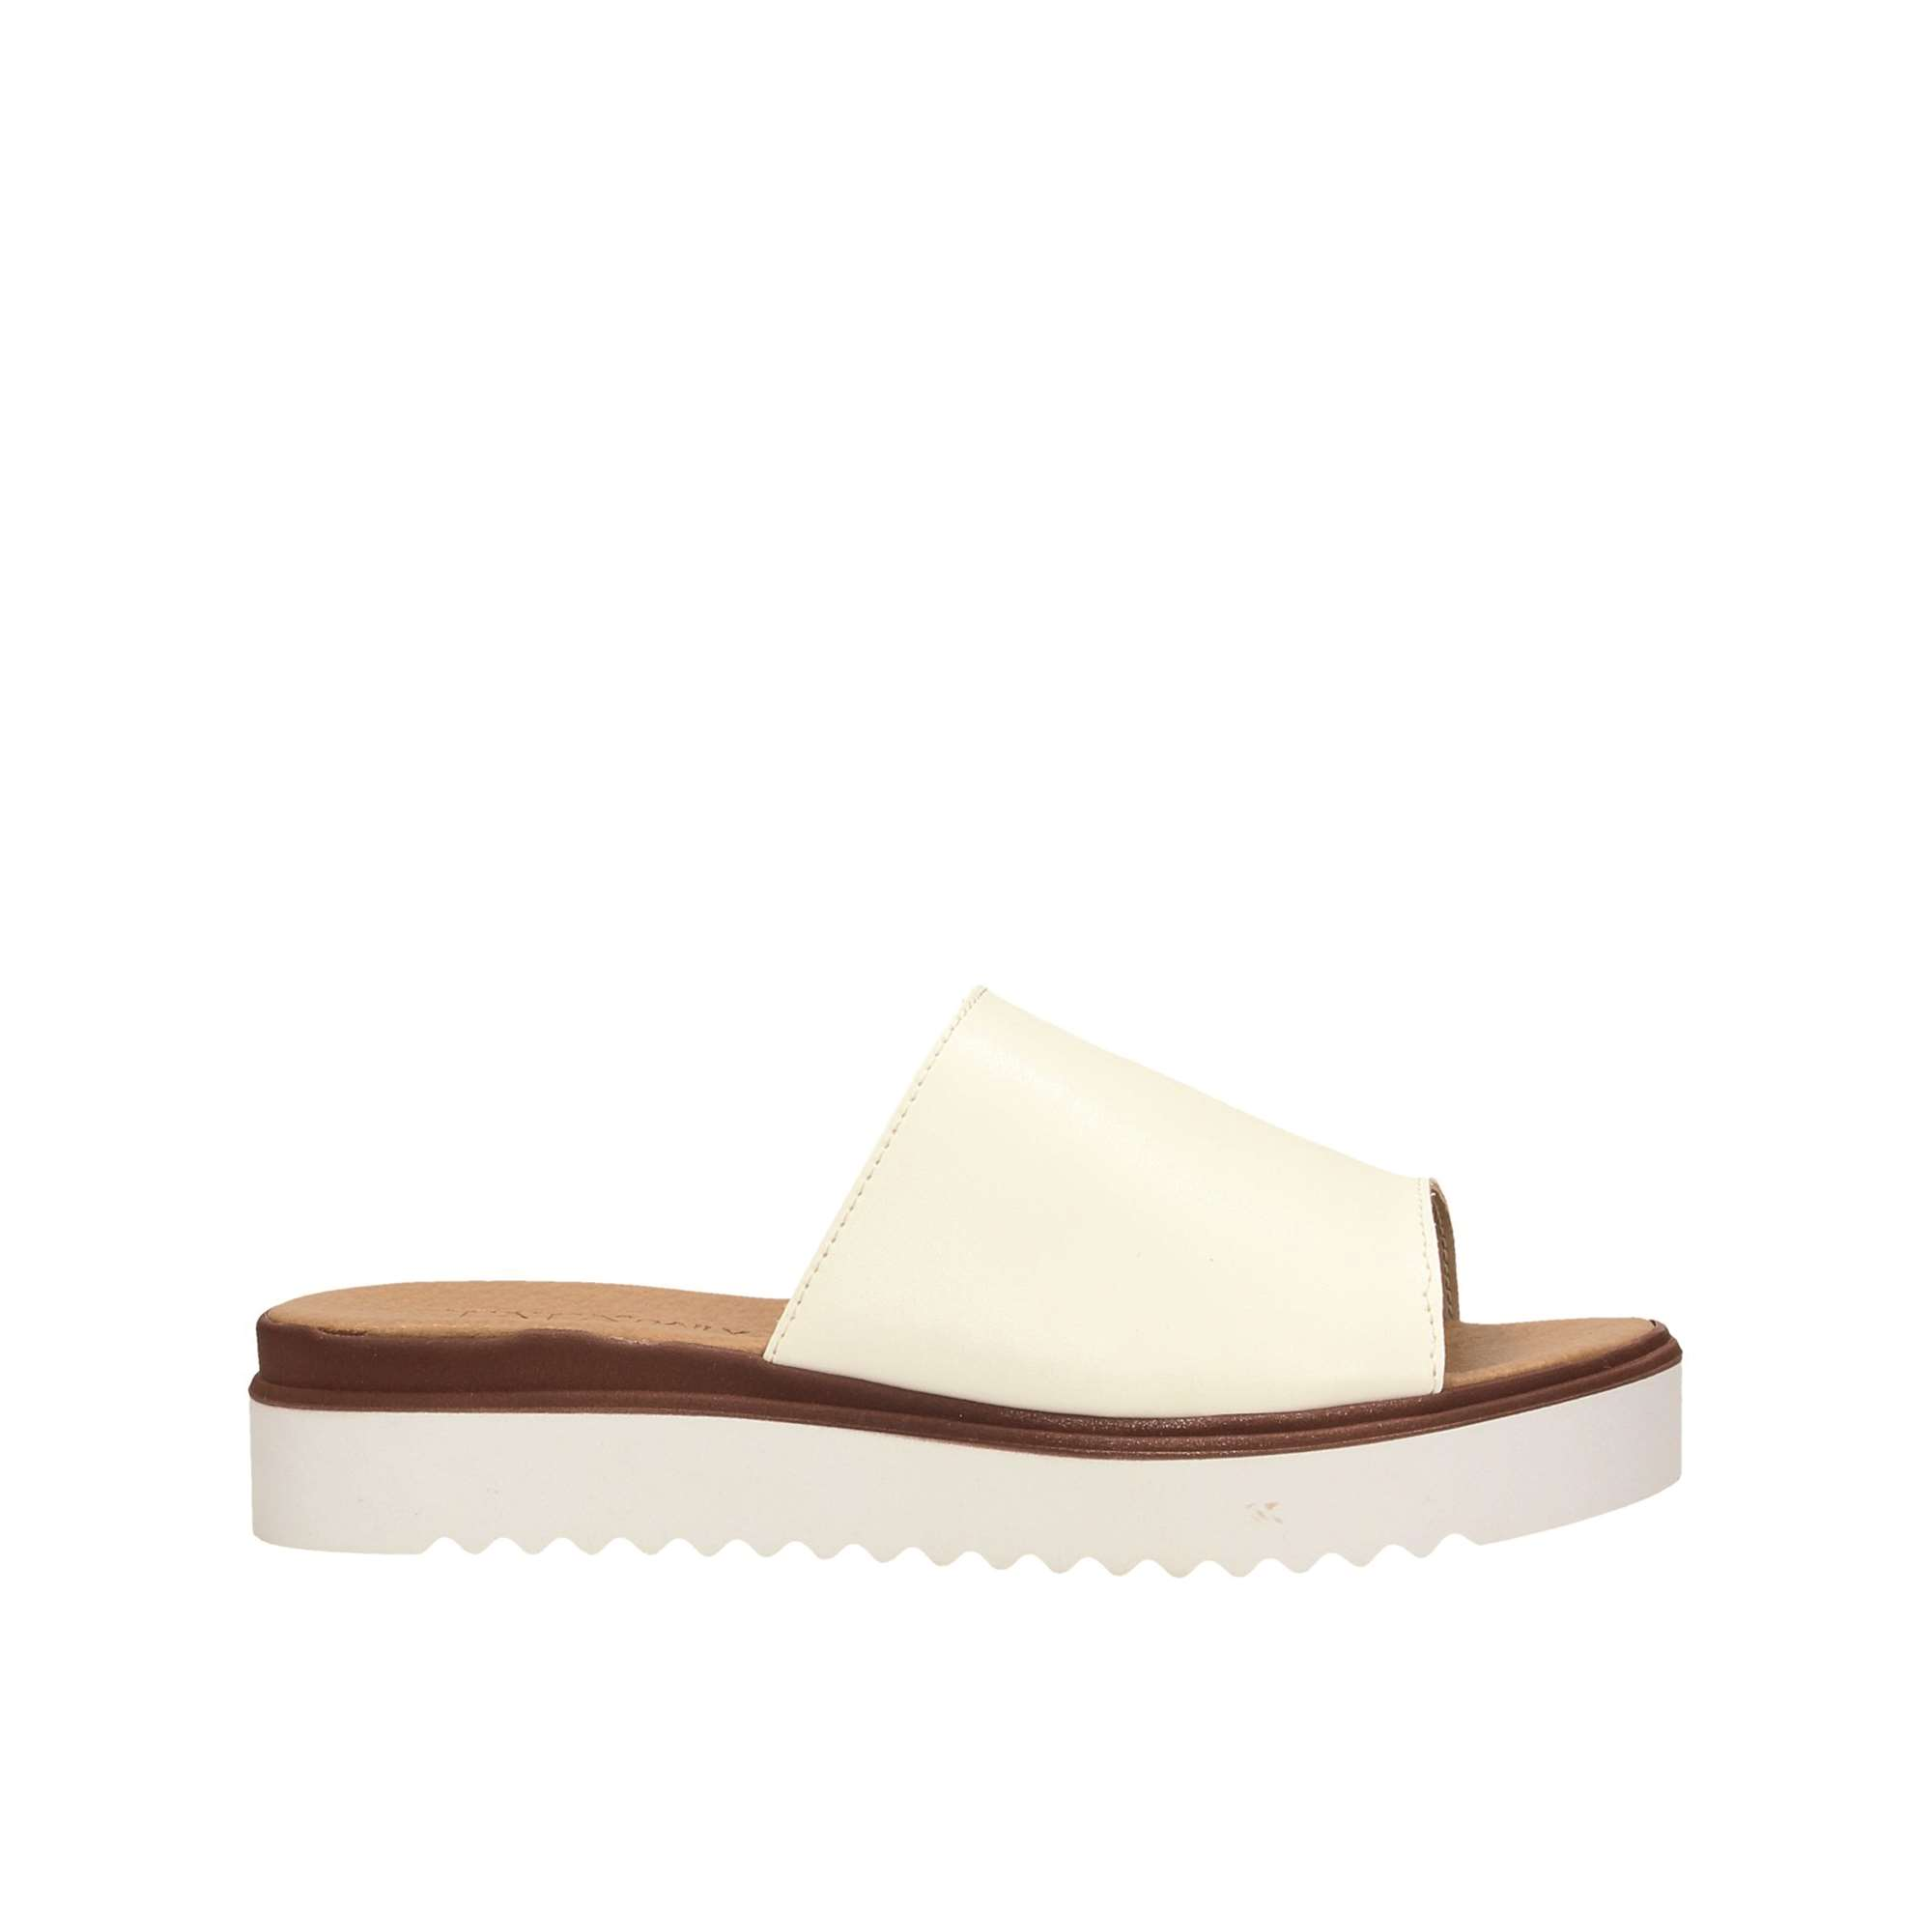 Tata Italia Shoes Woman Sandali 440-6147/E19